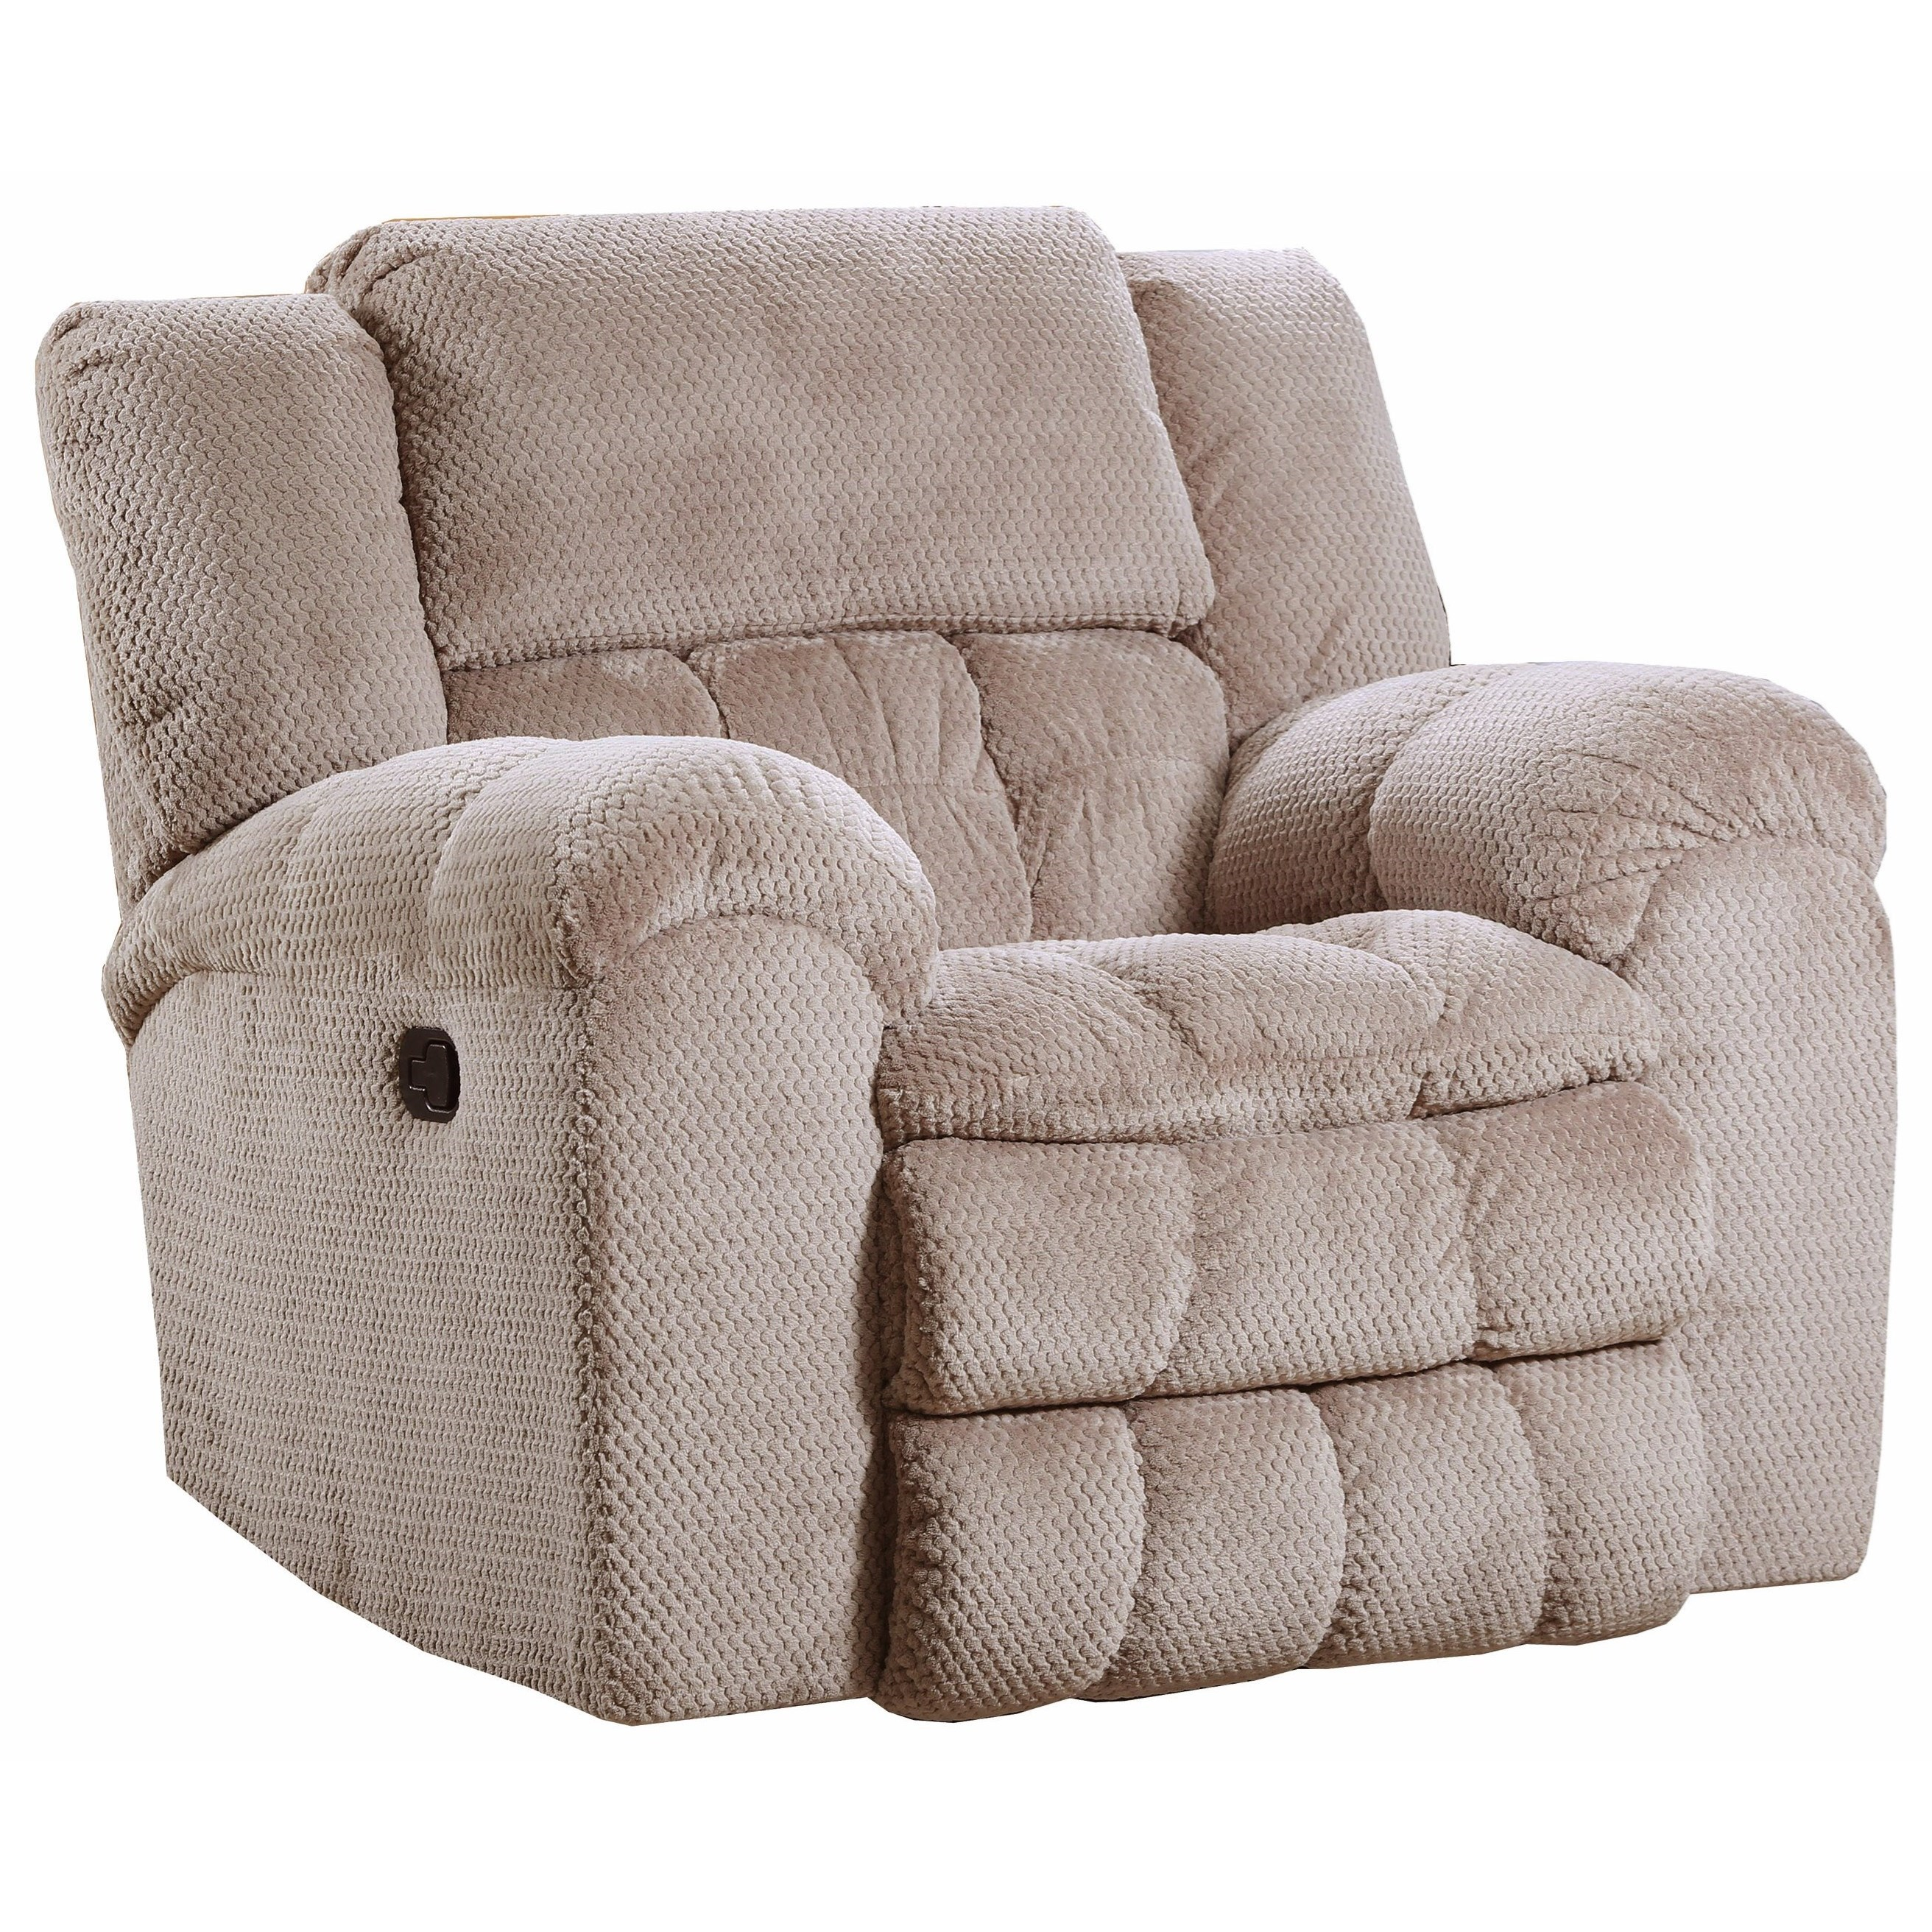 50580BR Rocker Recliner by Simmons Upholstery at O'Dunk & O'Bright Furniture